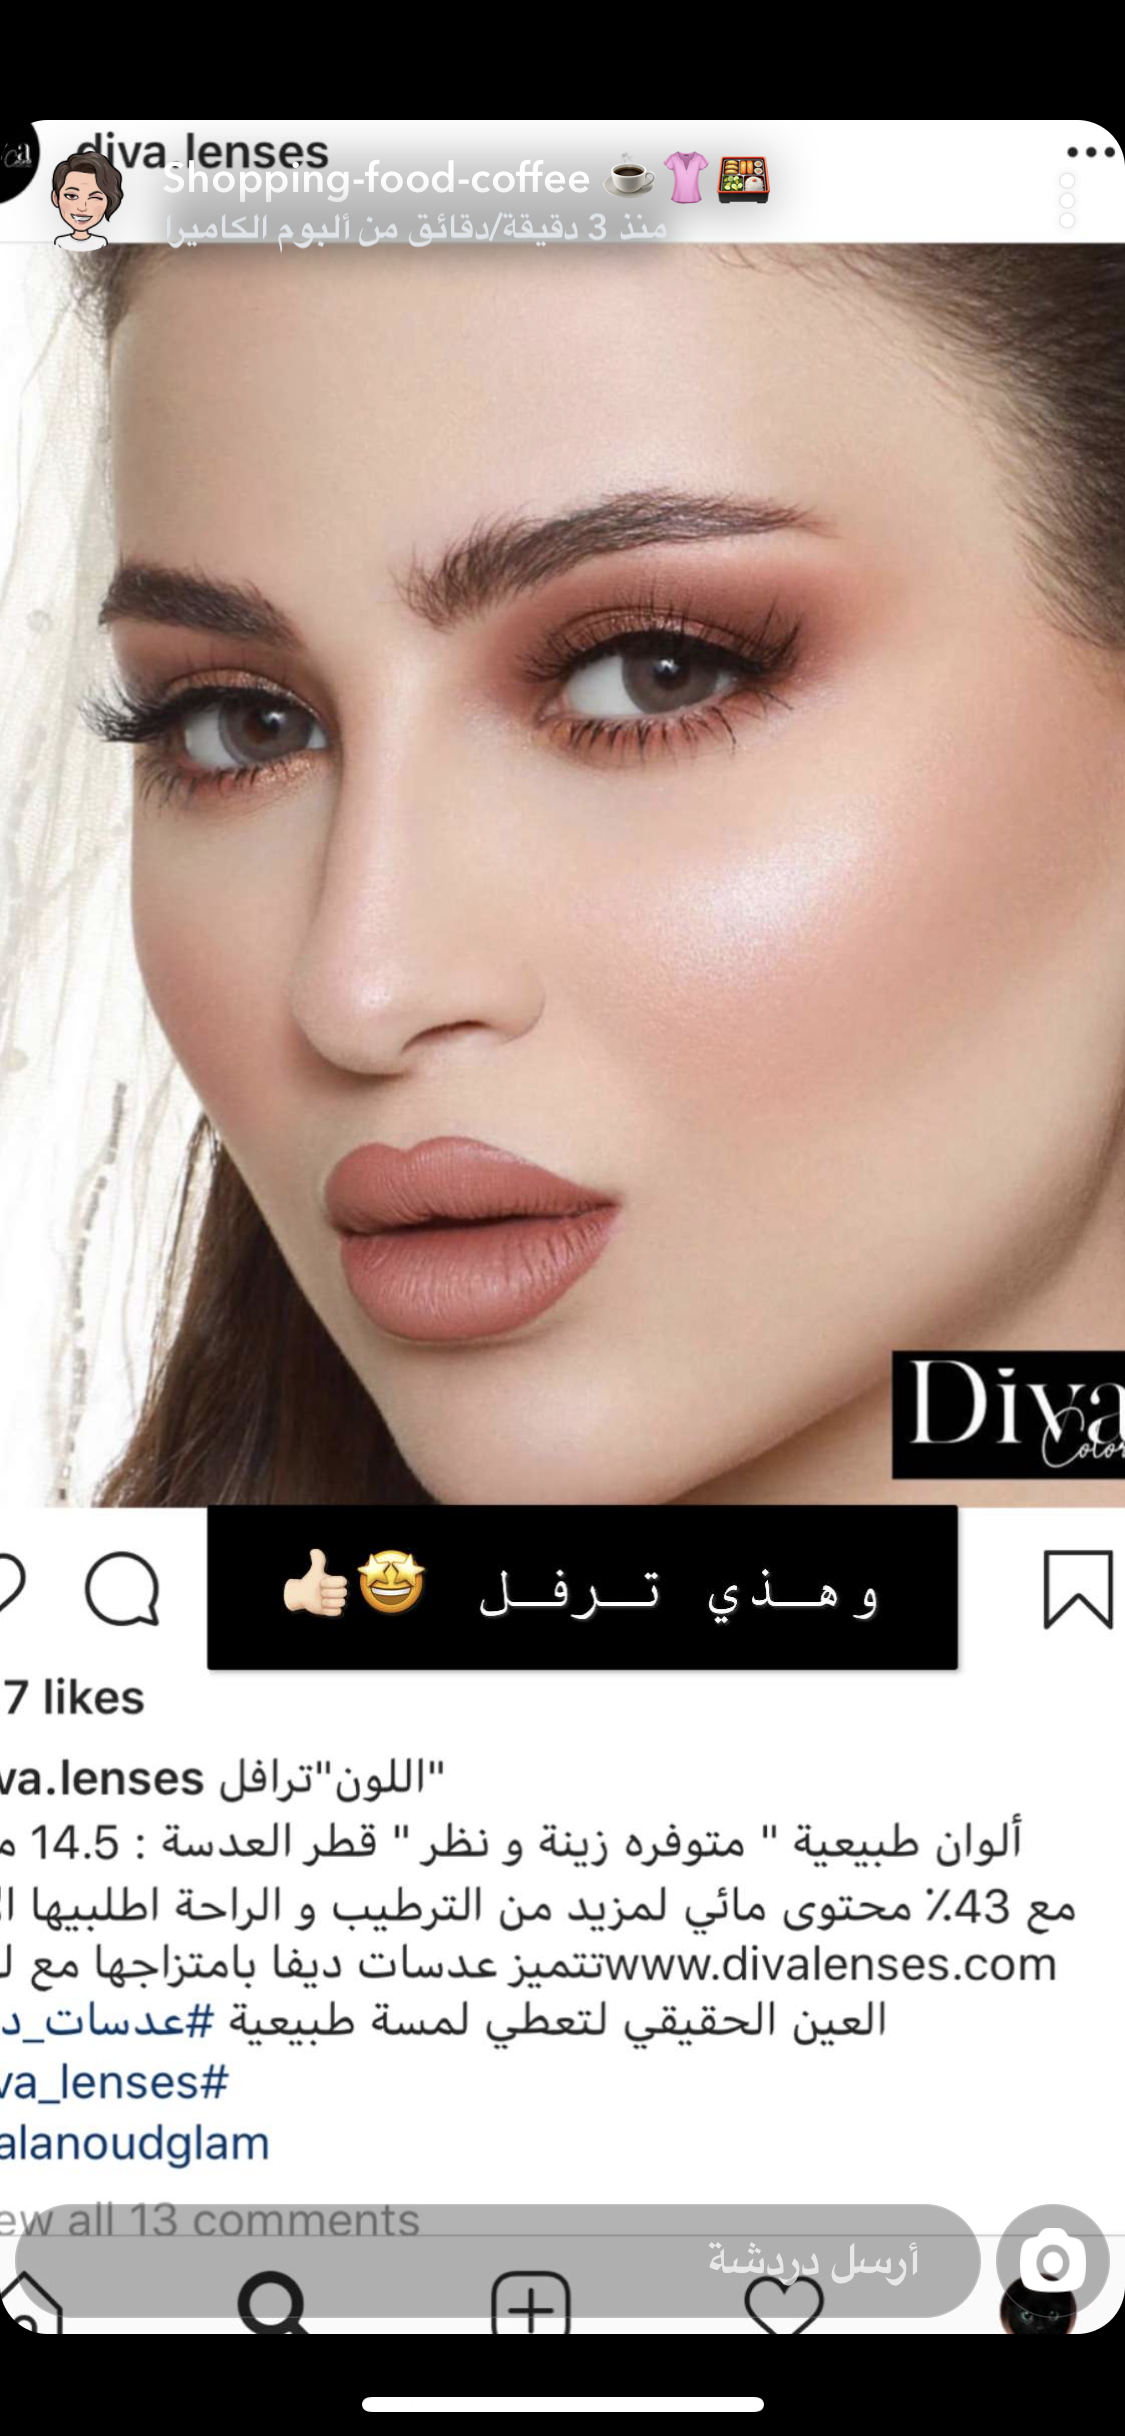 Pin By Hala On دين Movie Posters Lenses Diva